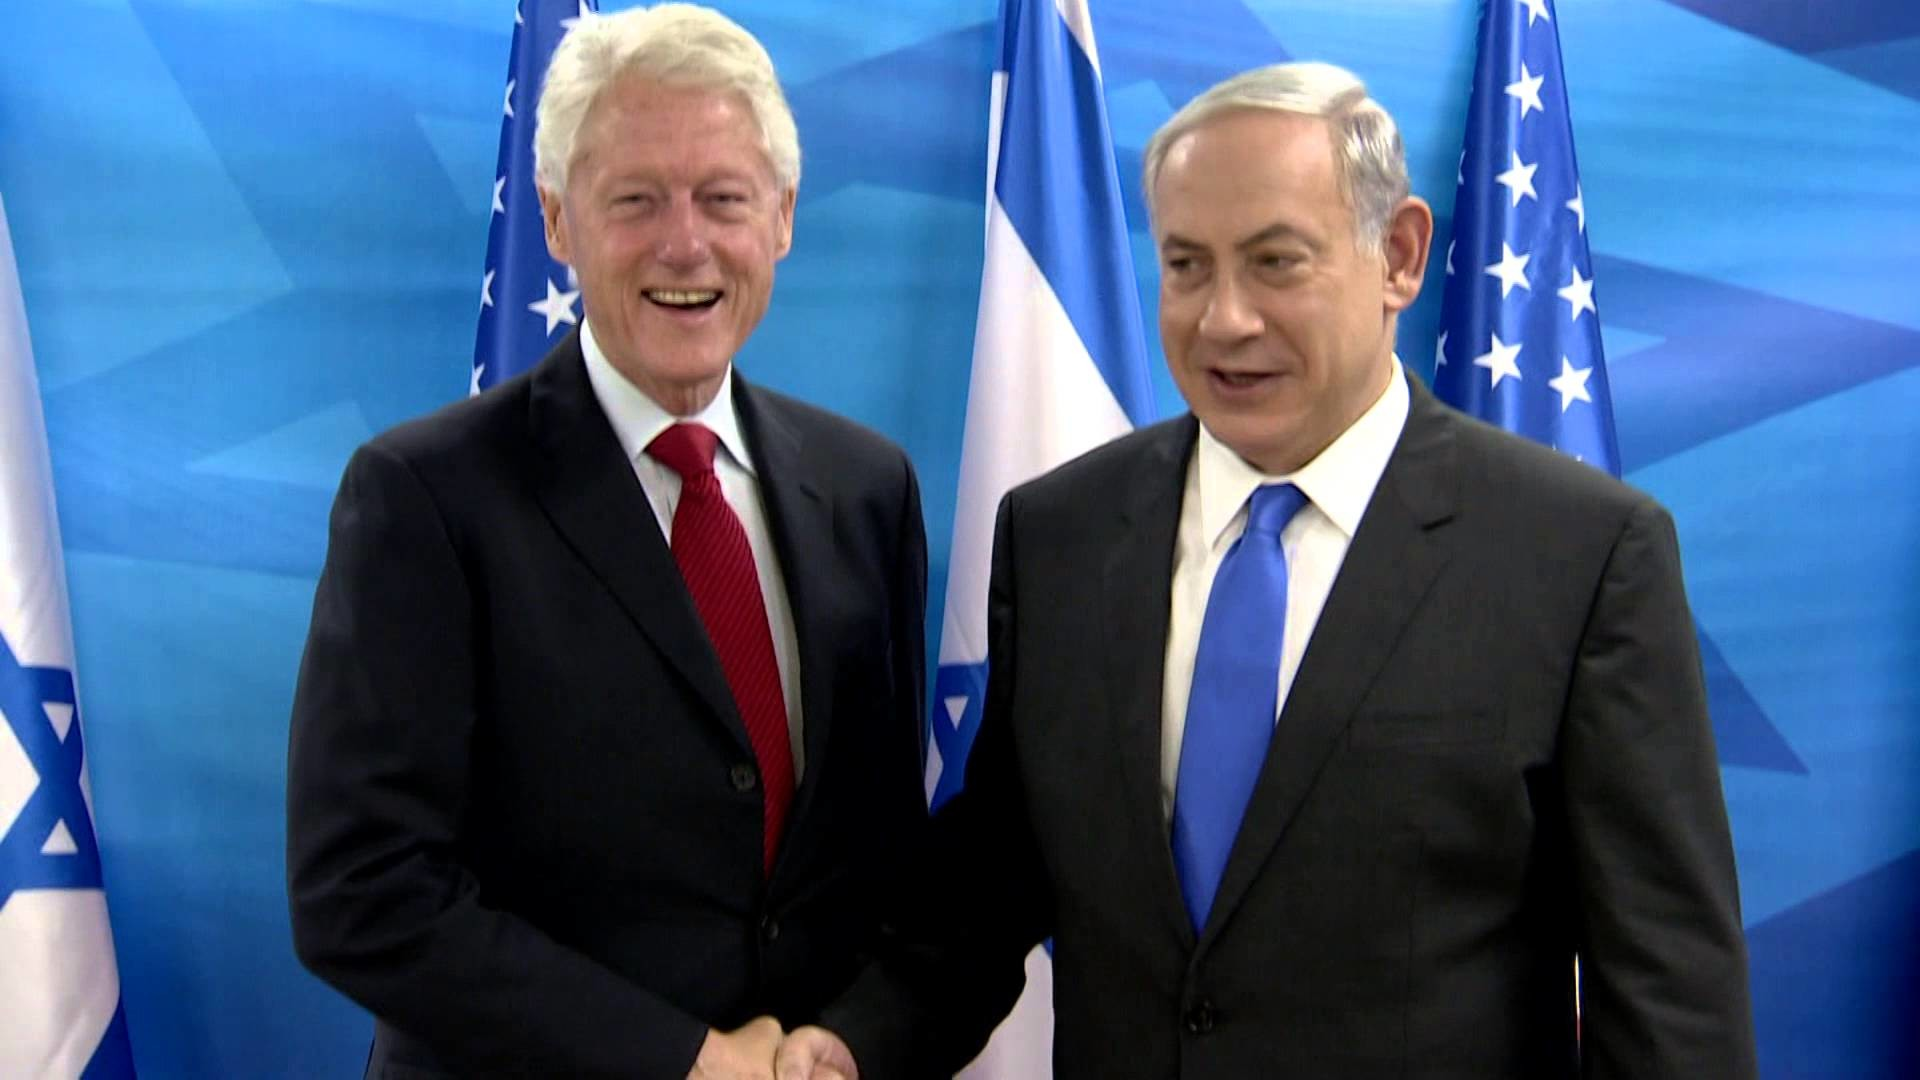 PM Netanyahu meets Bill Clinton